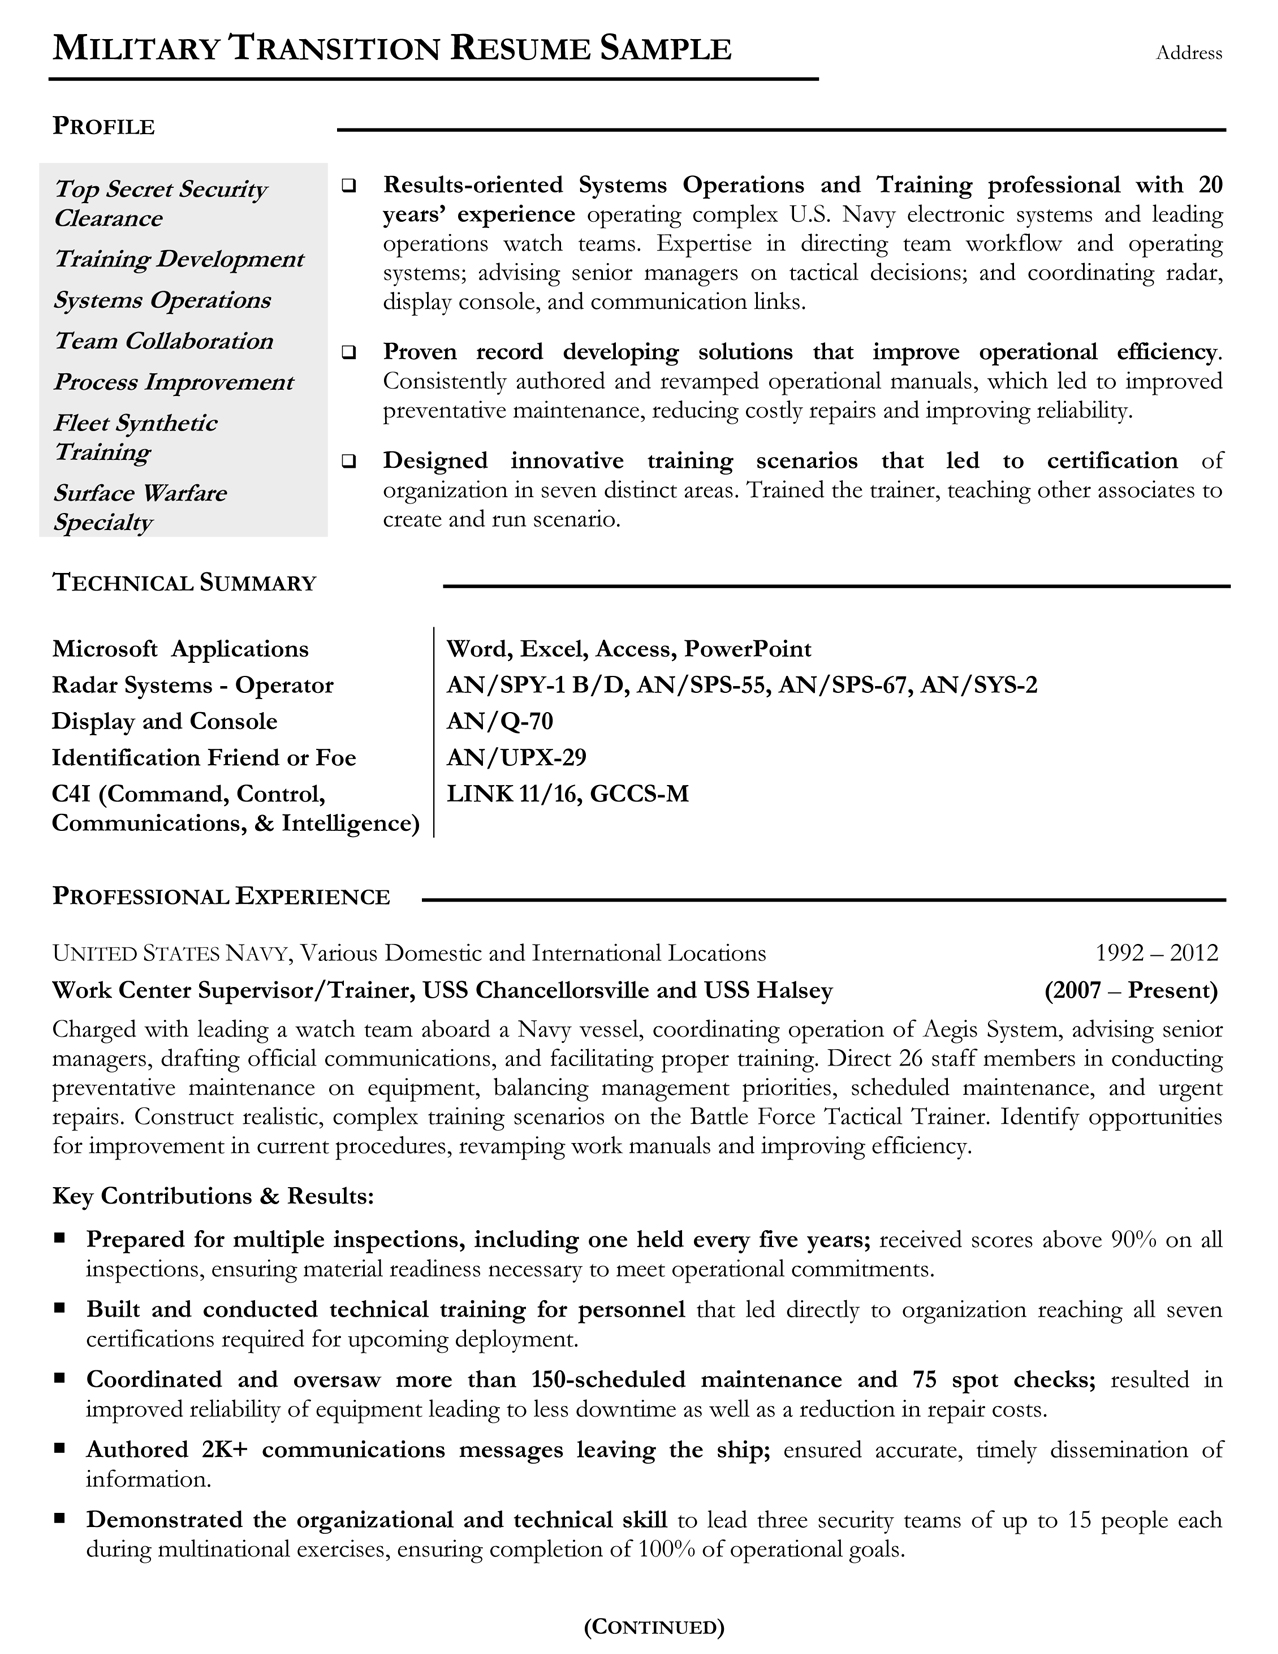 military resume samples examples writers tips for veterans mtr sample matching machine Resume Resume Tips For Veterans